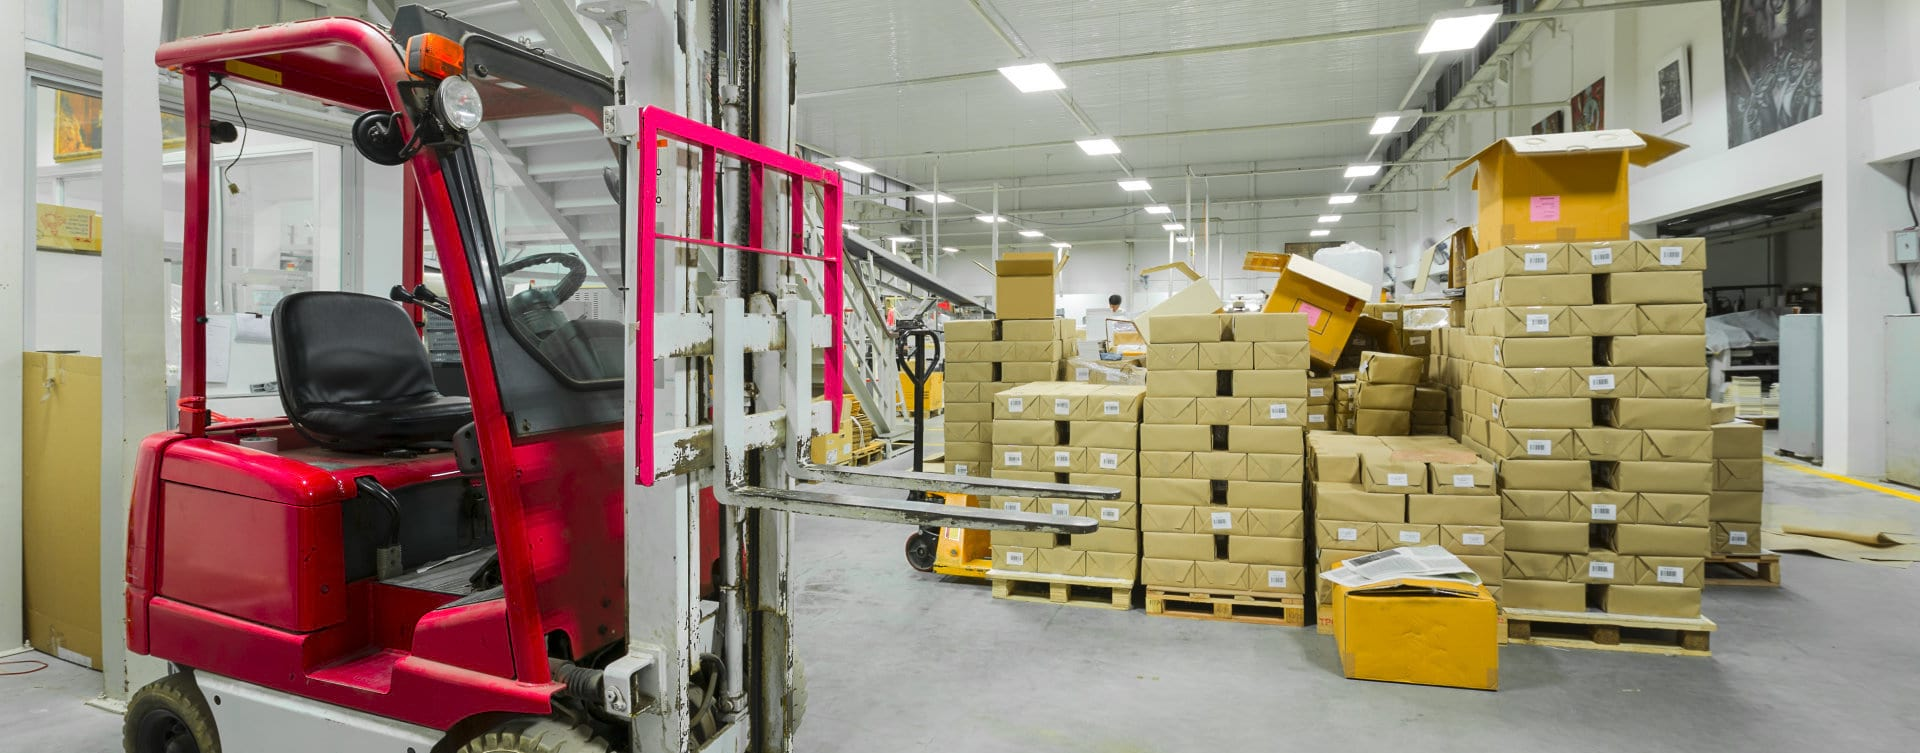 products inside the warehouse